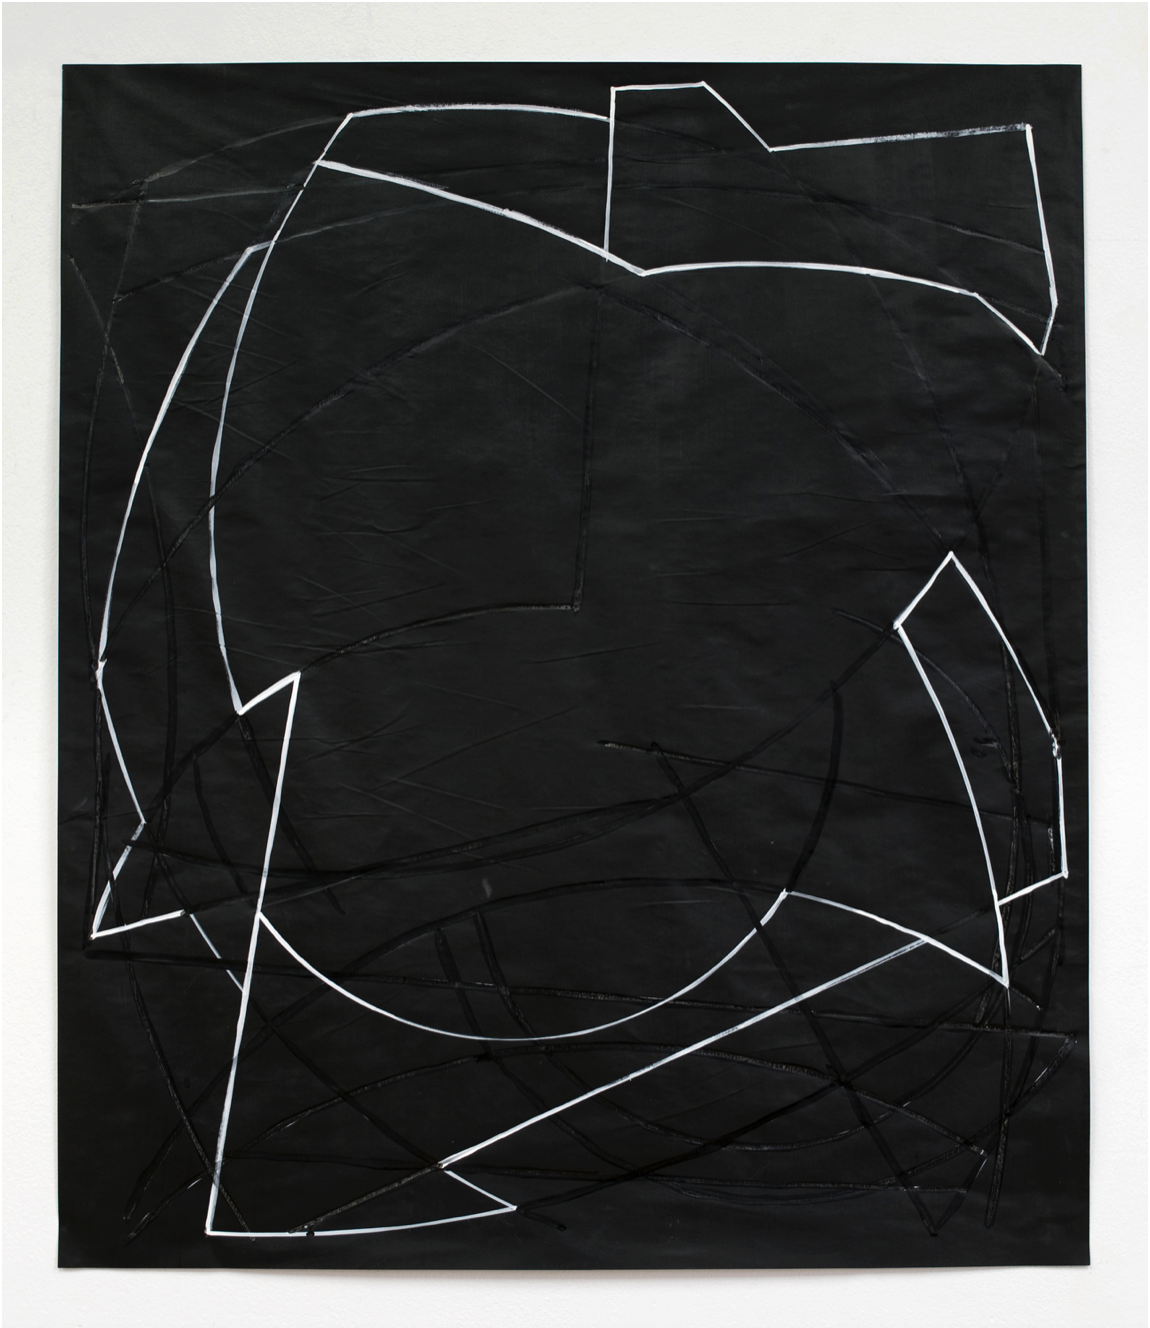 Jen Aitken  Untitled Drawing # 69 , 2018 ink and gesso on vellum 34 x 29 in (86.4 x 73.7 cm)